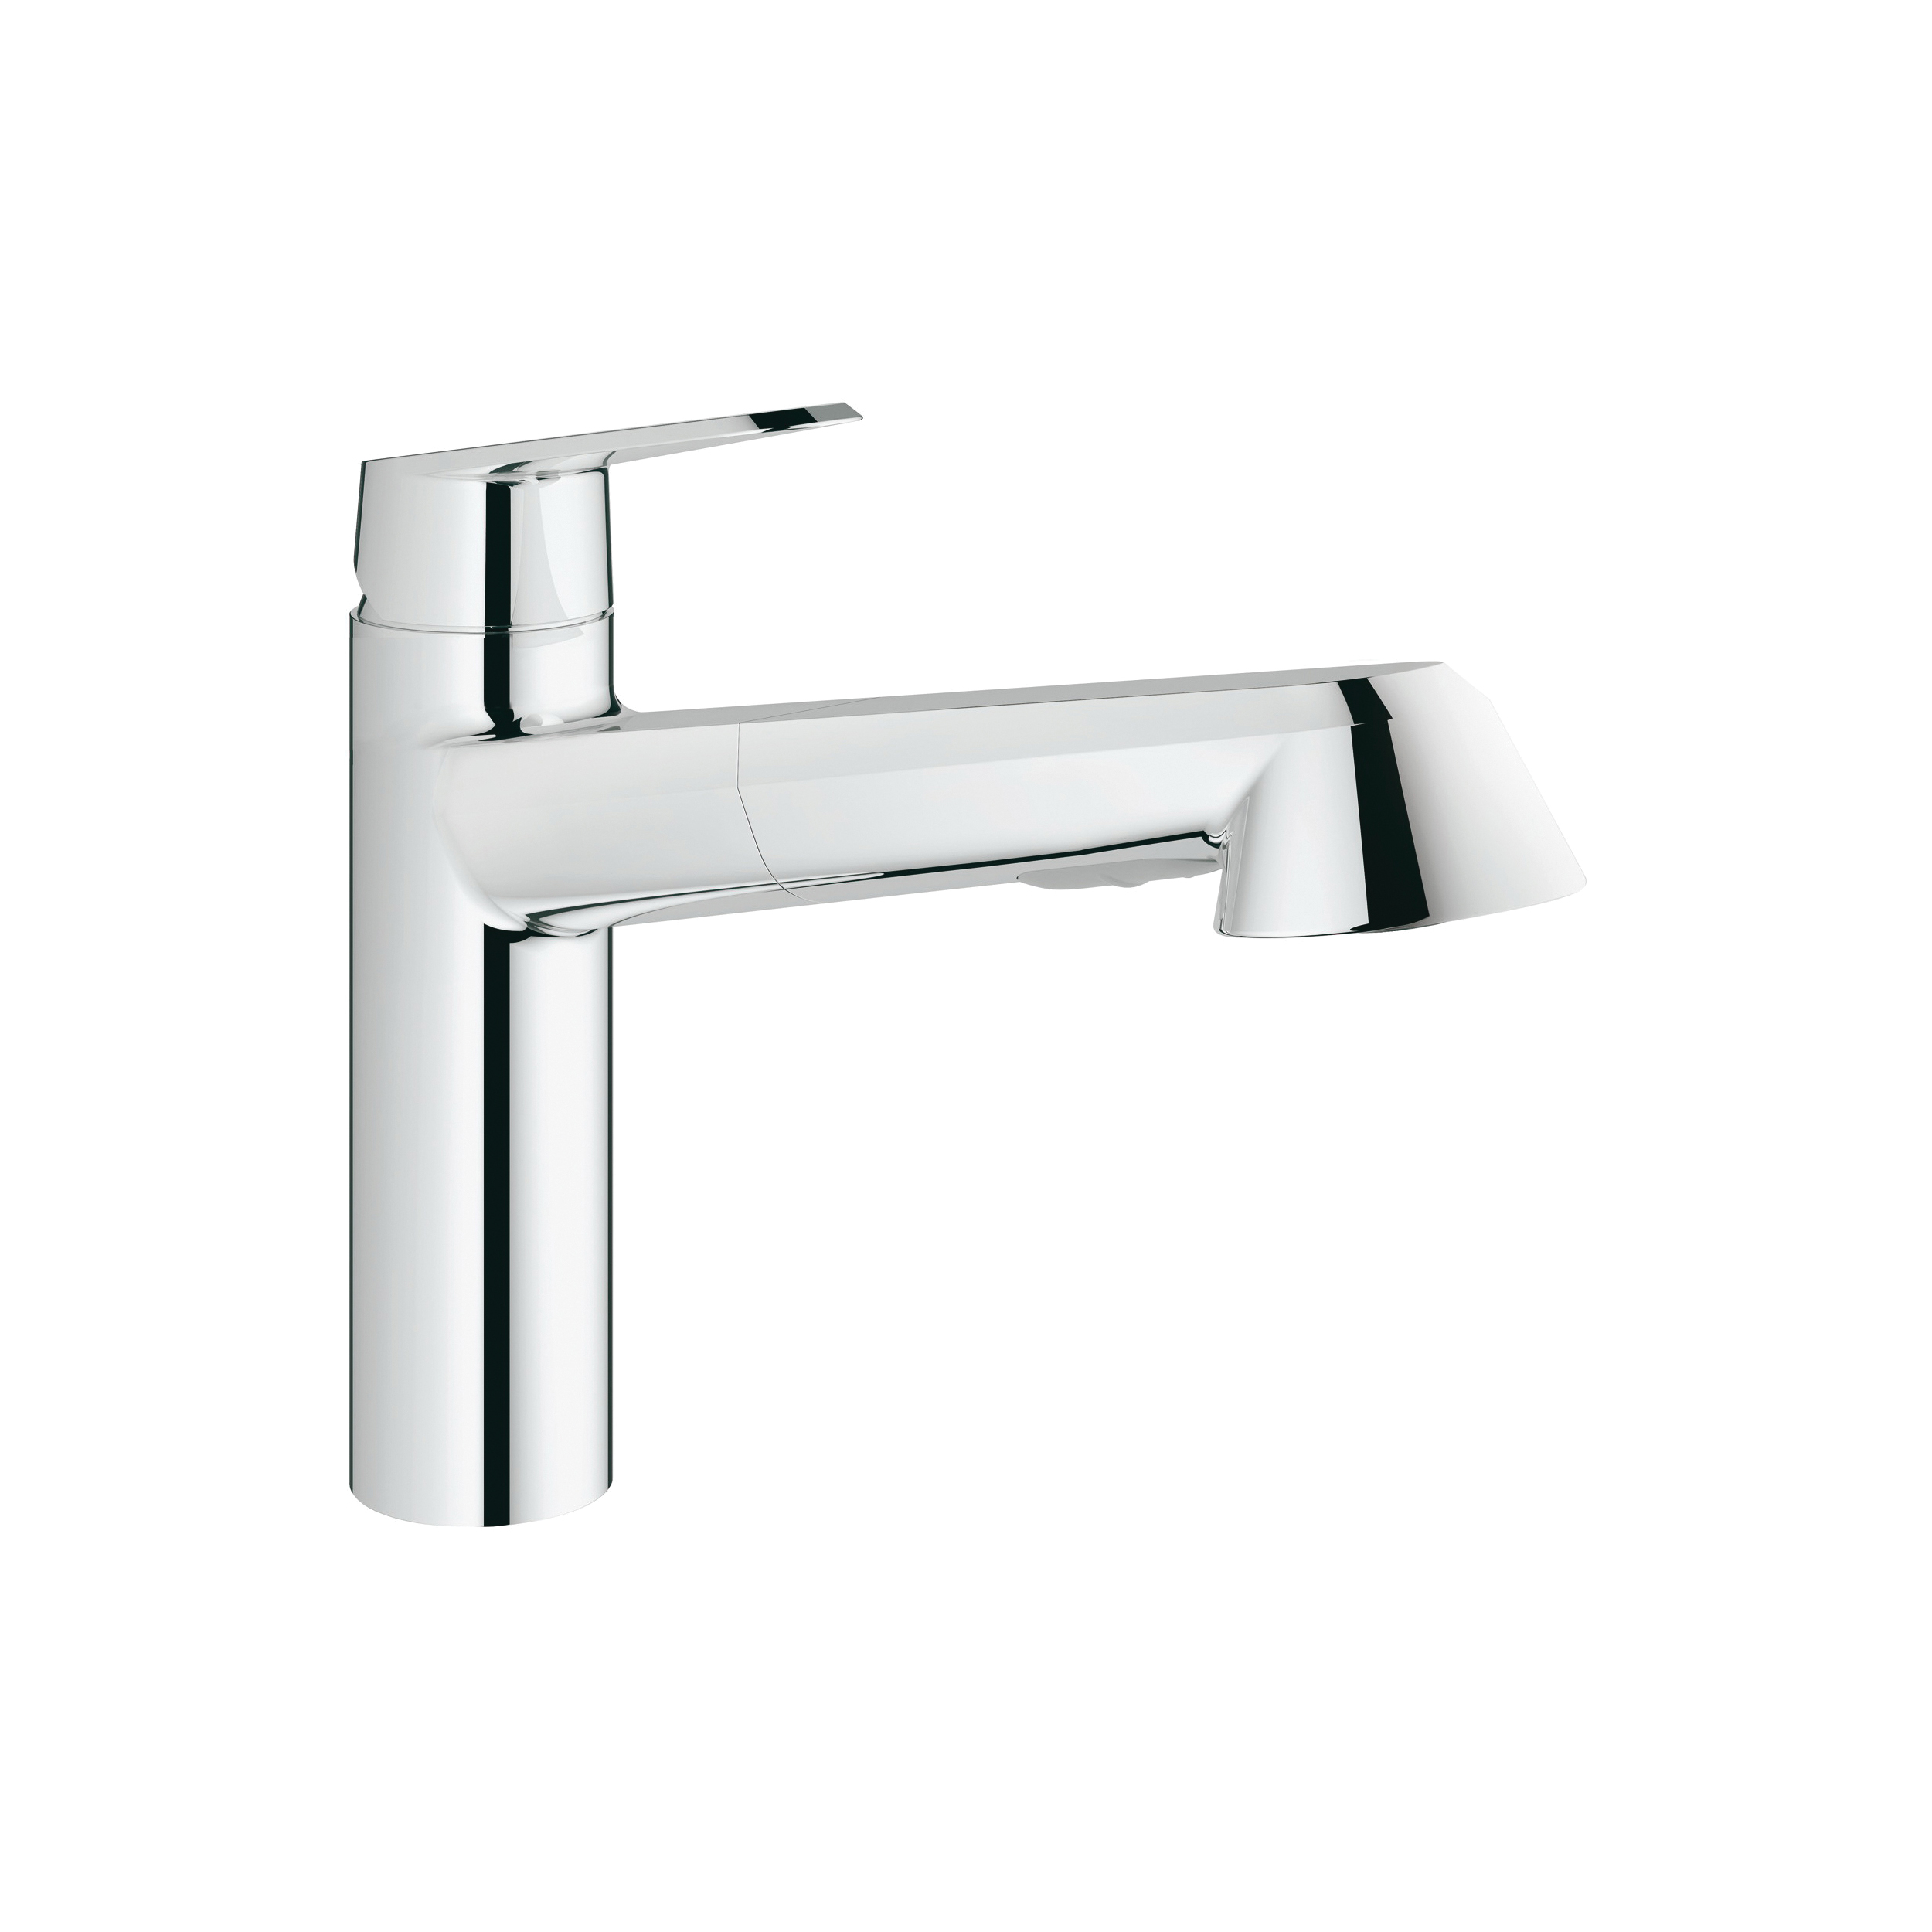 GROHE 33330002 Eurodisc® Cosmopolitan Sink Mixer, 1.75 gpm, 1 Faucet Hole, Chrome Plated, 1 Handle, Import